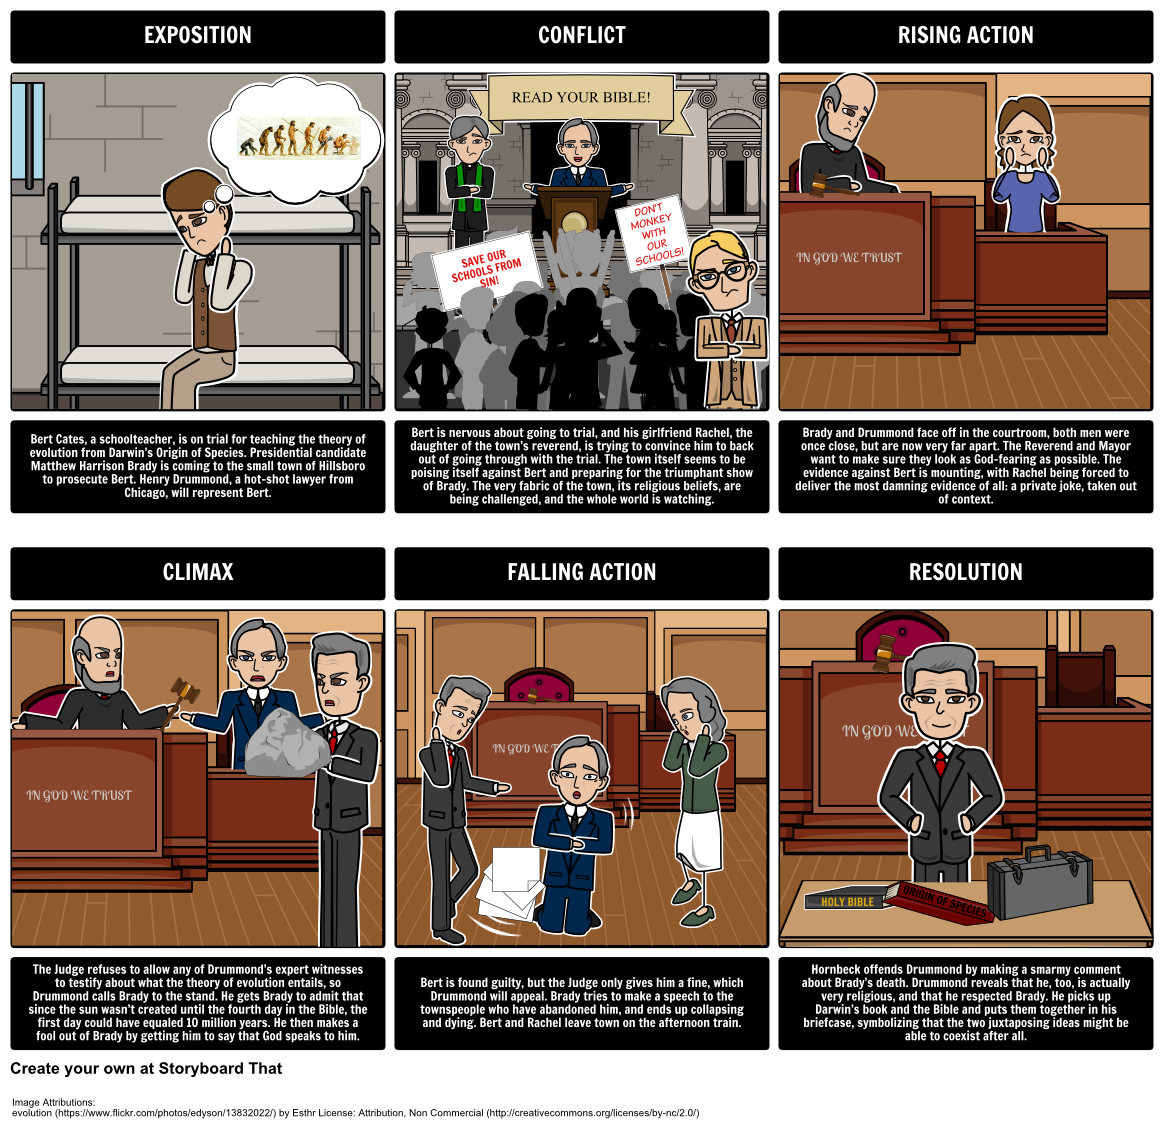 Summary: A Common Use For Storyboard